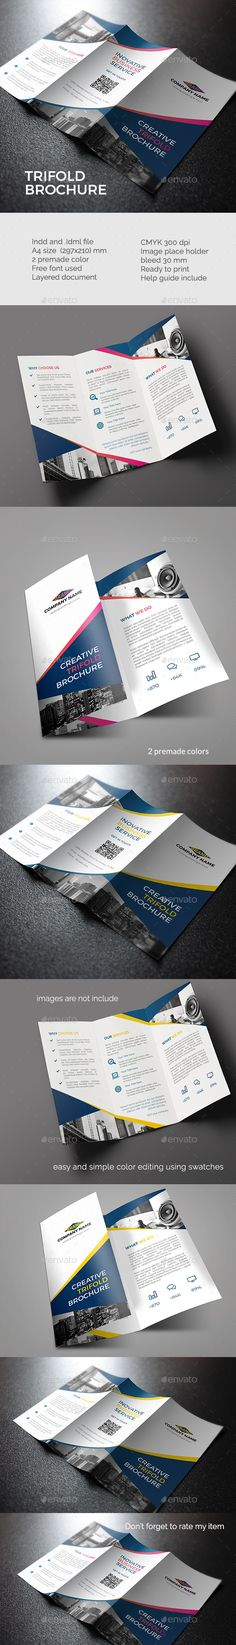 Trifold Brochure Template InDesign INDD. Download here: http://graphicriver.net/item/trifold-brochure-template-/15879417?ref=ksioks